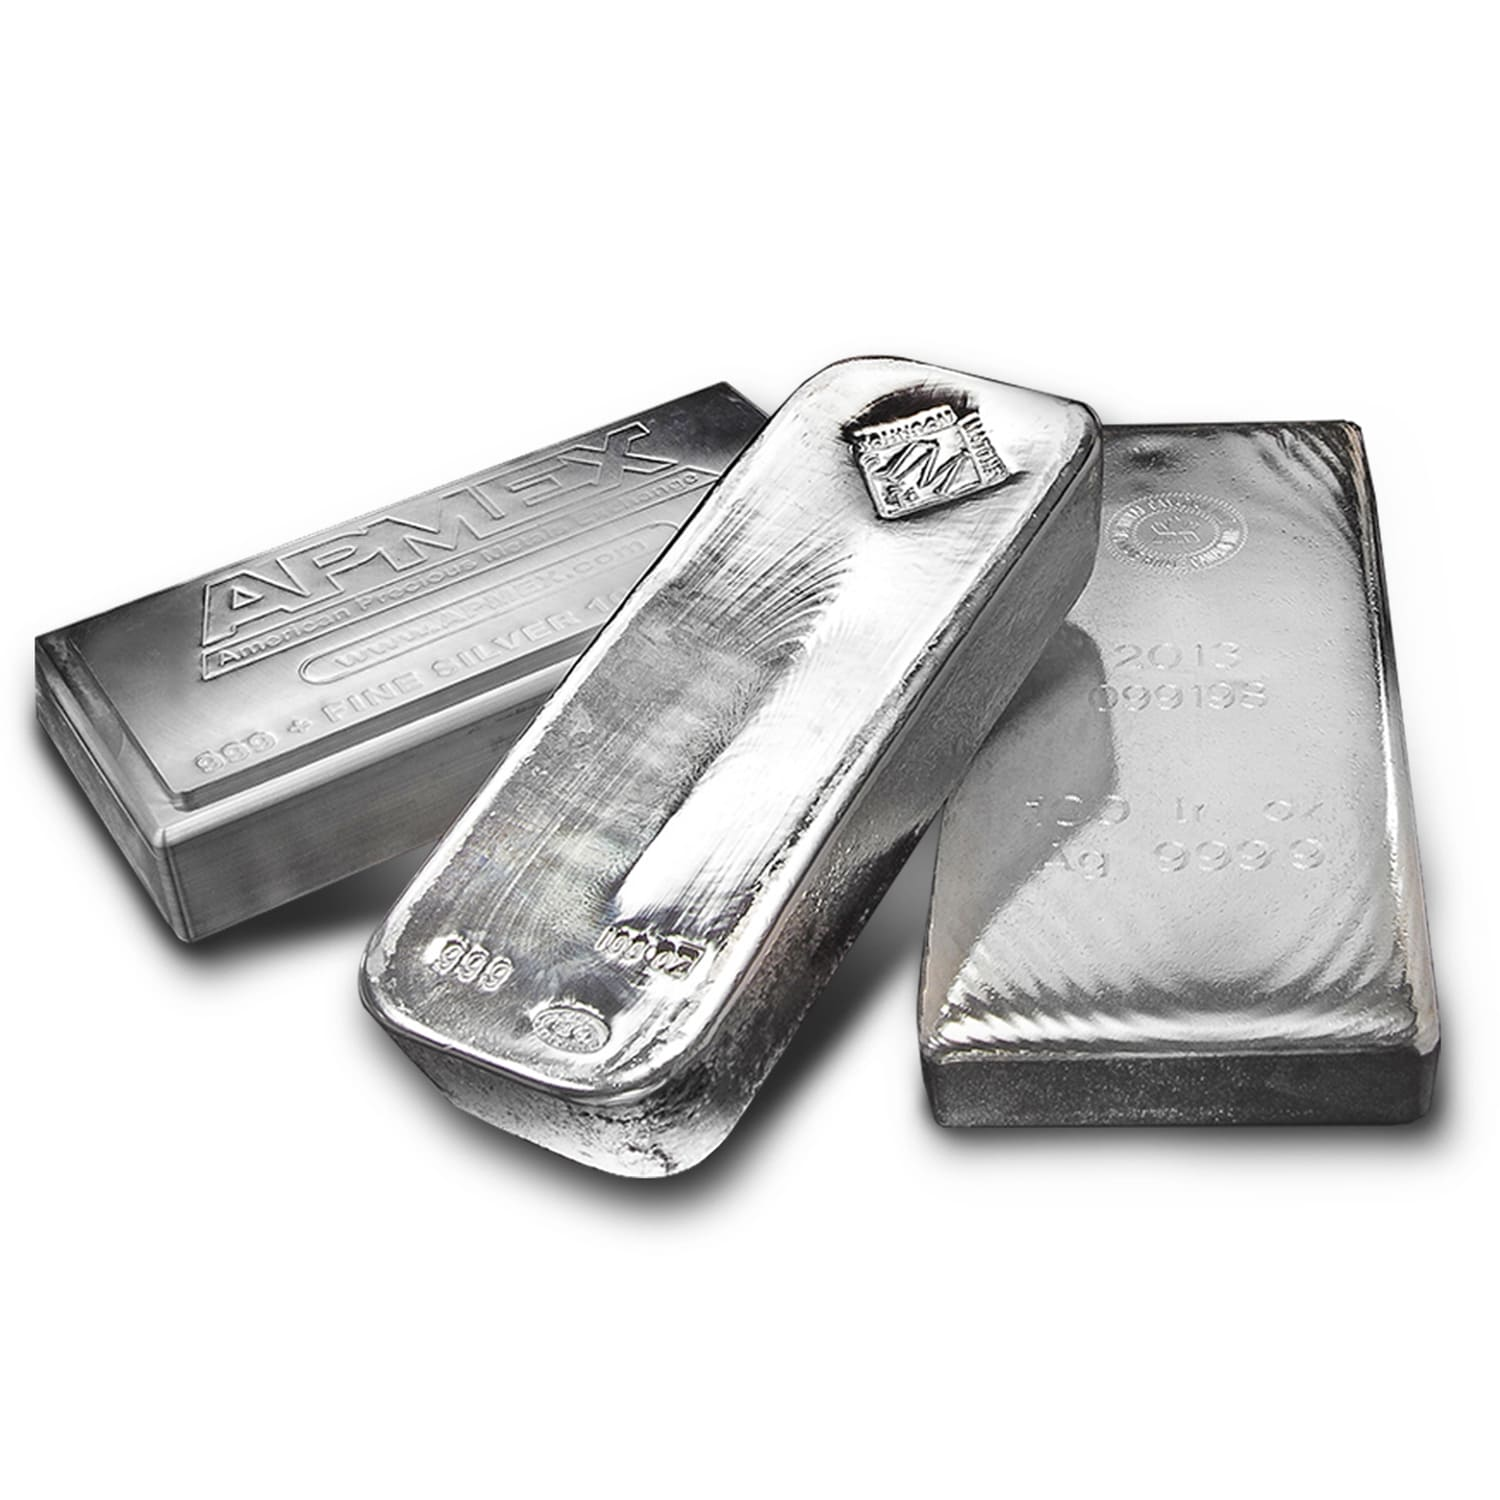 99.05 oz Silver Bar - Secondary Market